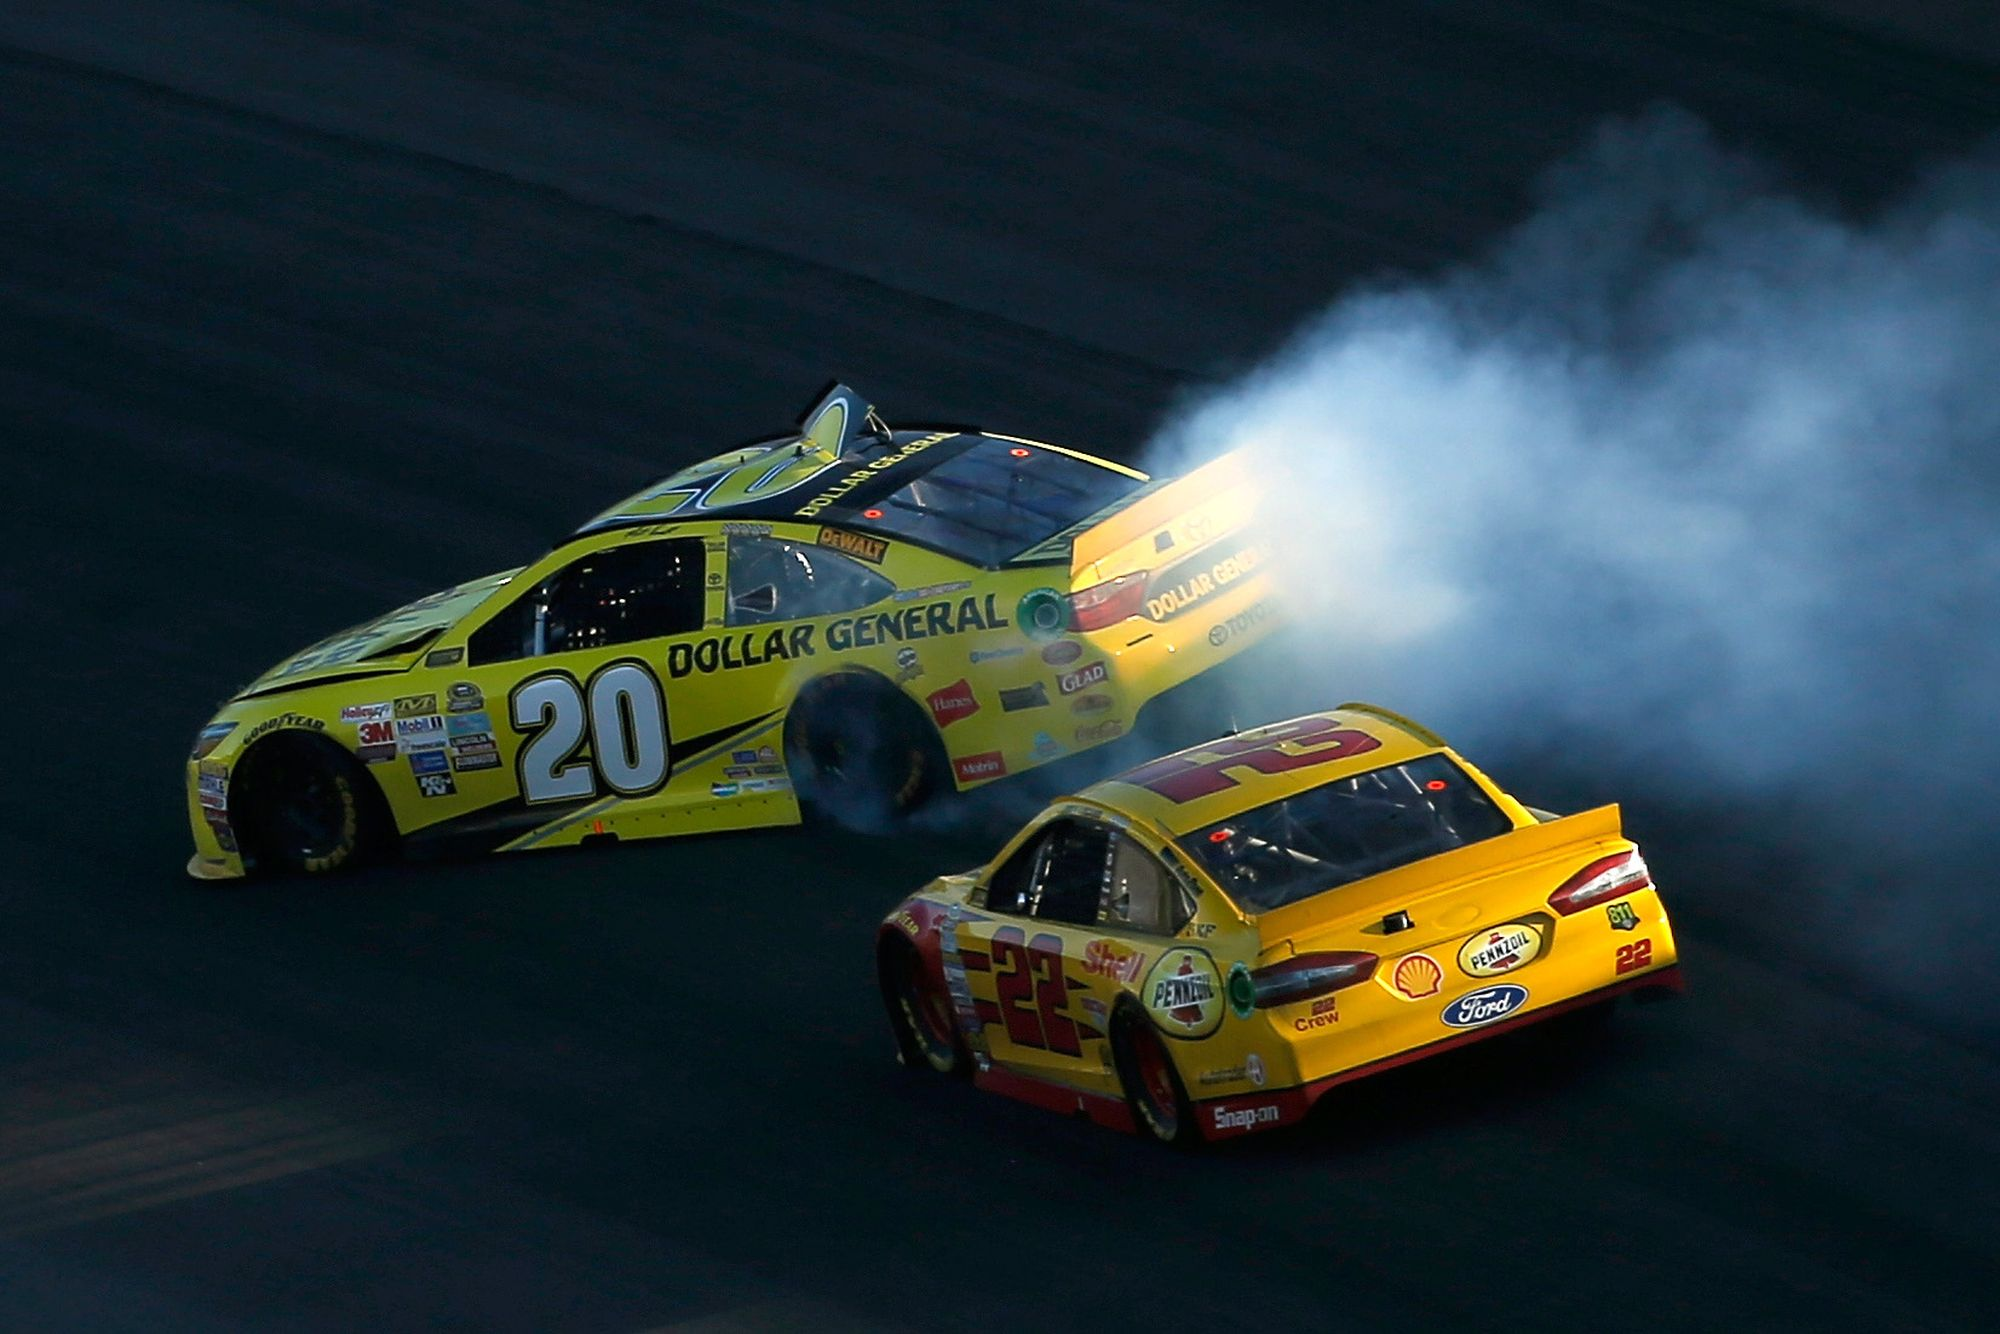 Logano vs Kenseth